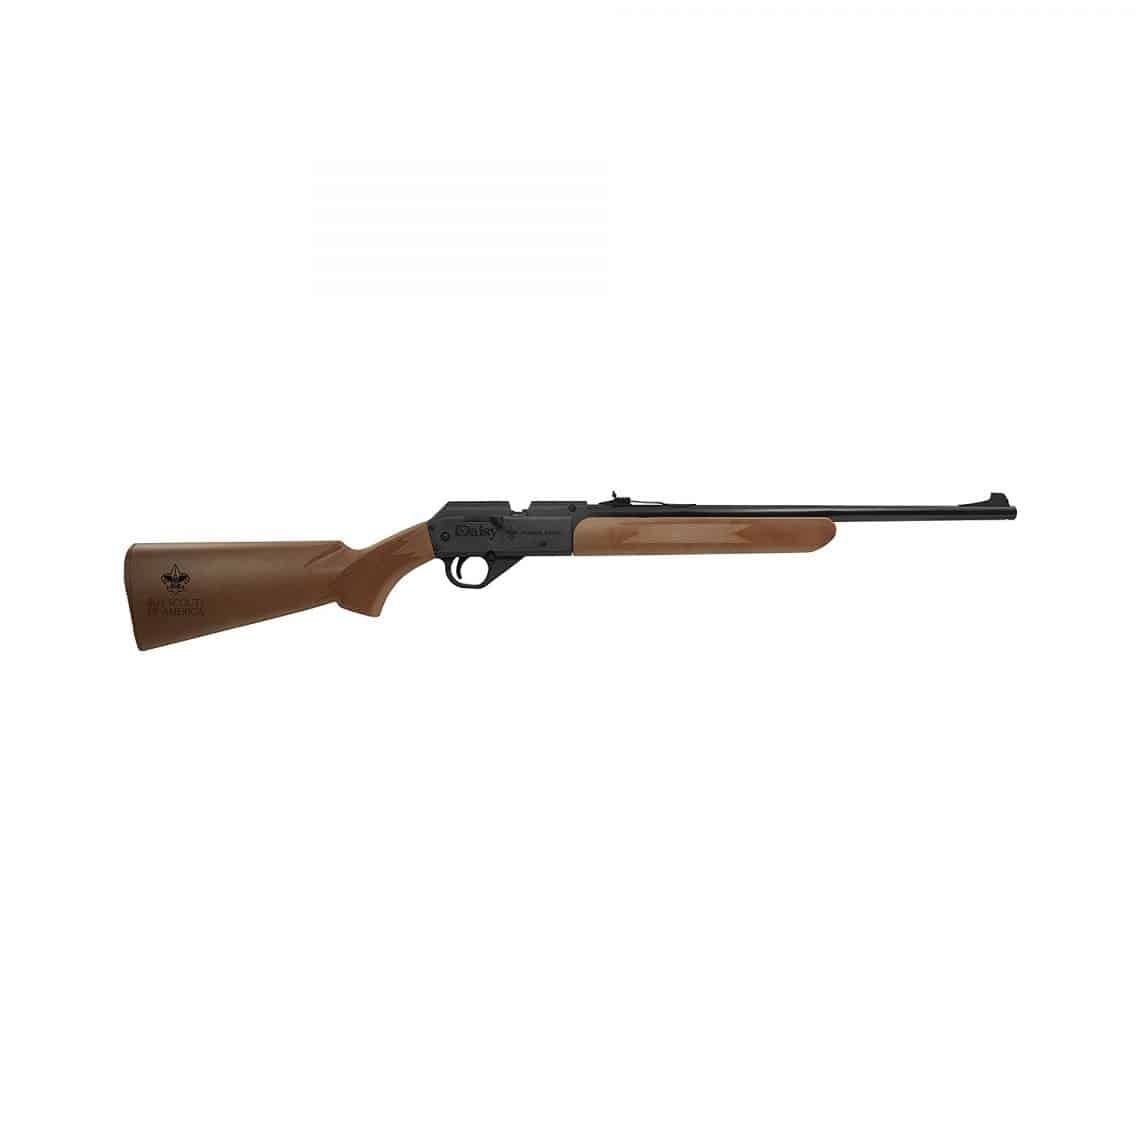 38bd7fc2ff8 DAISY BSA MODEL 1910 BOY SCOUTS OF AMERICA BB GUN - Northwoods ...